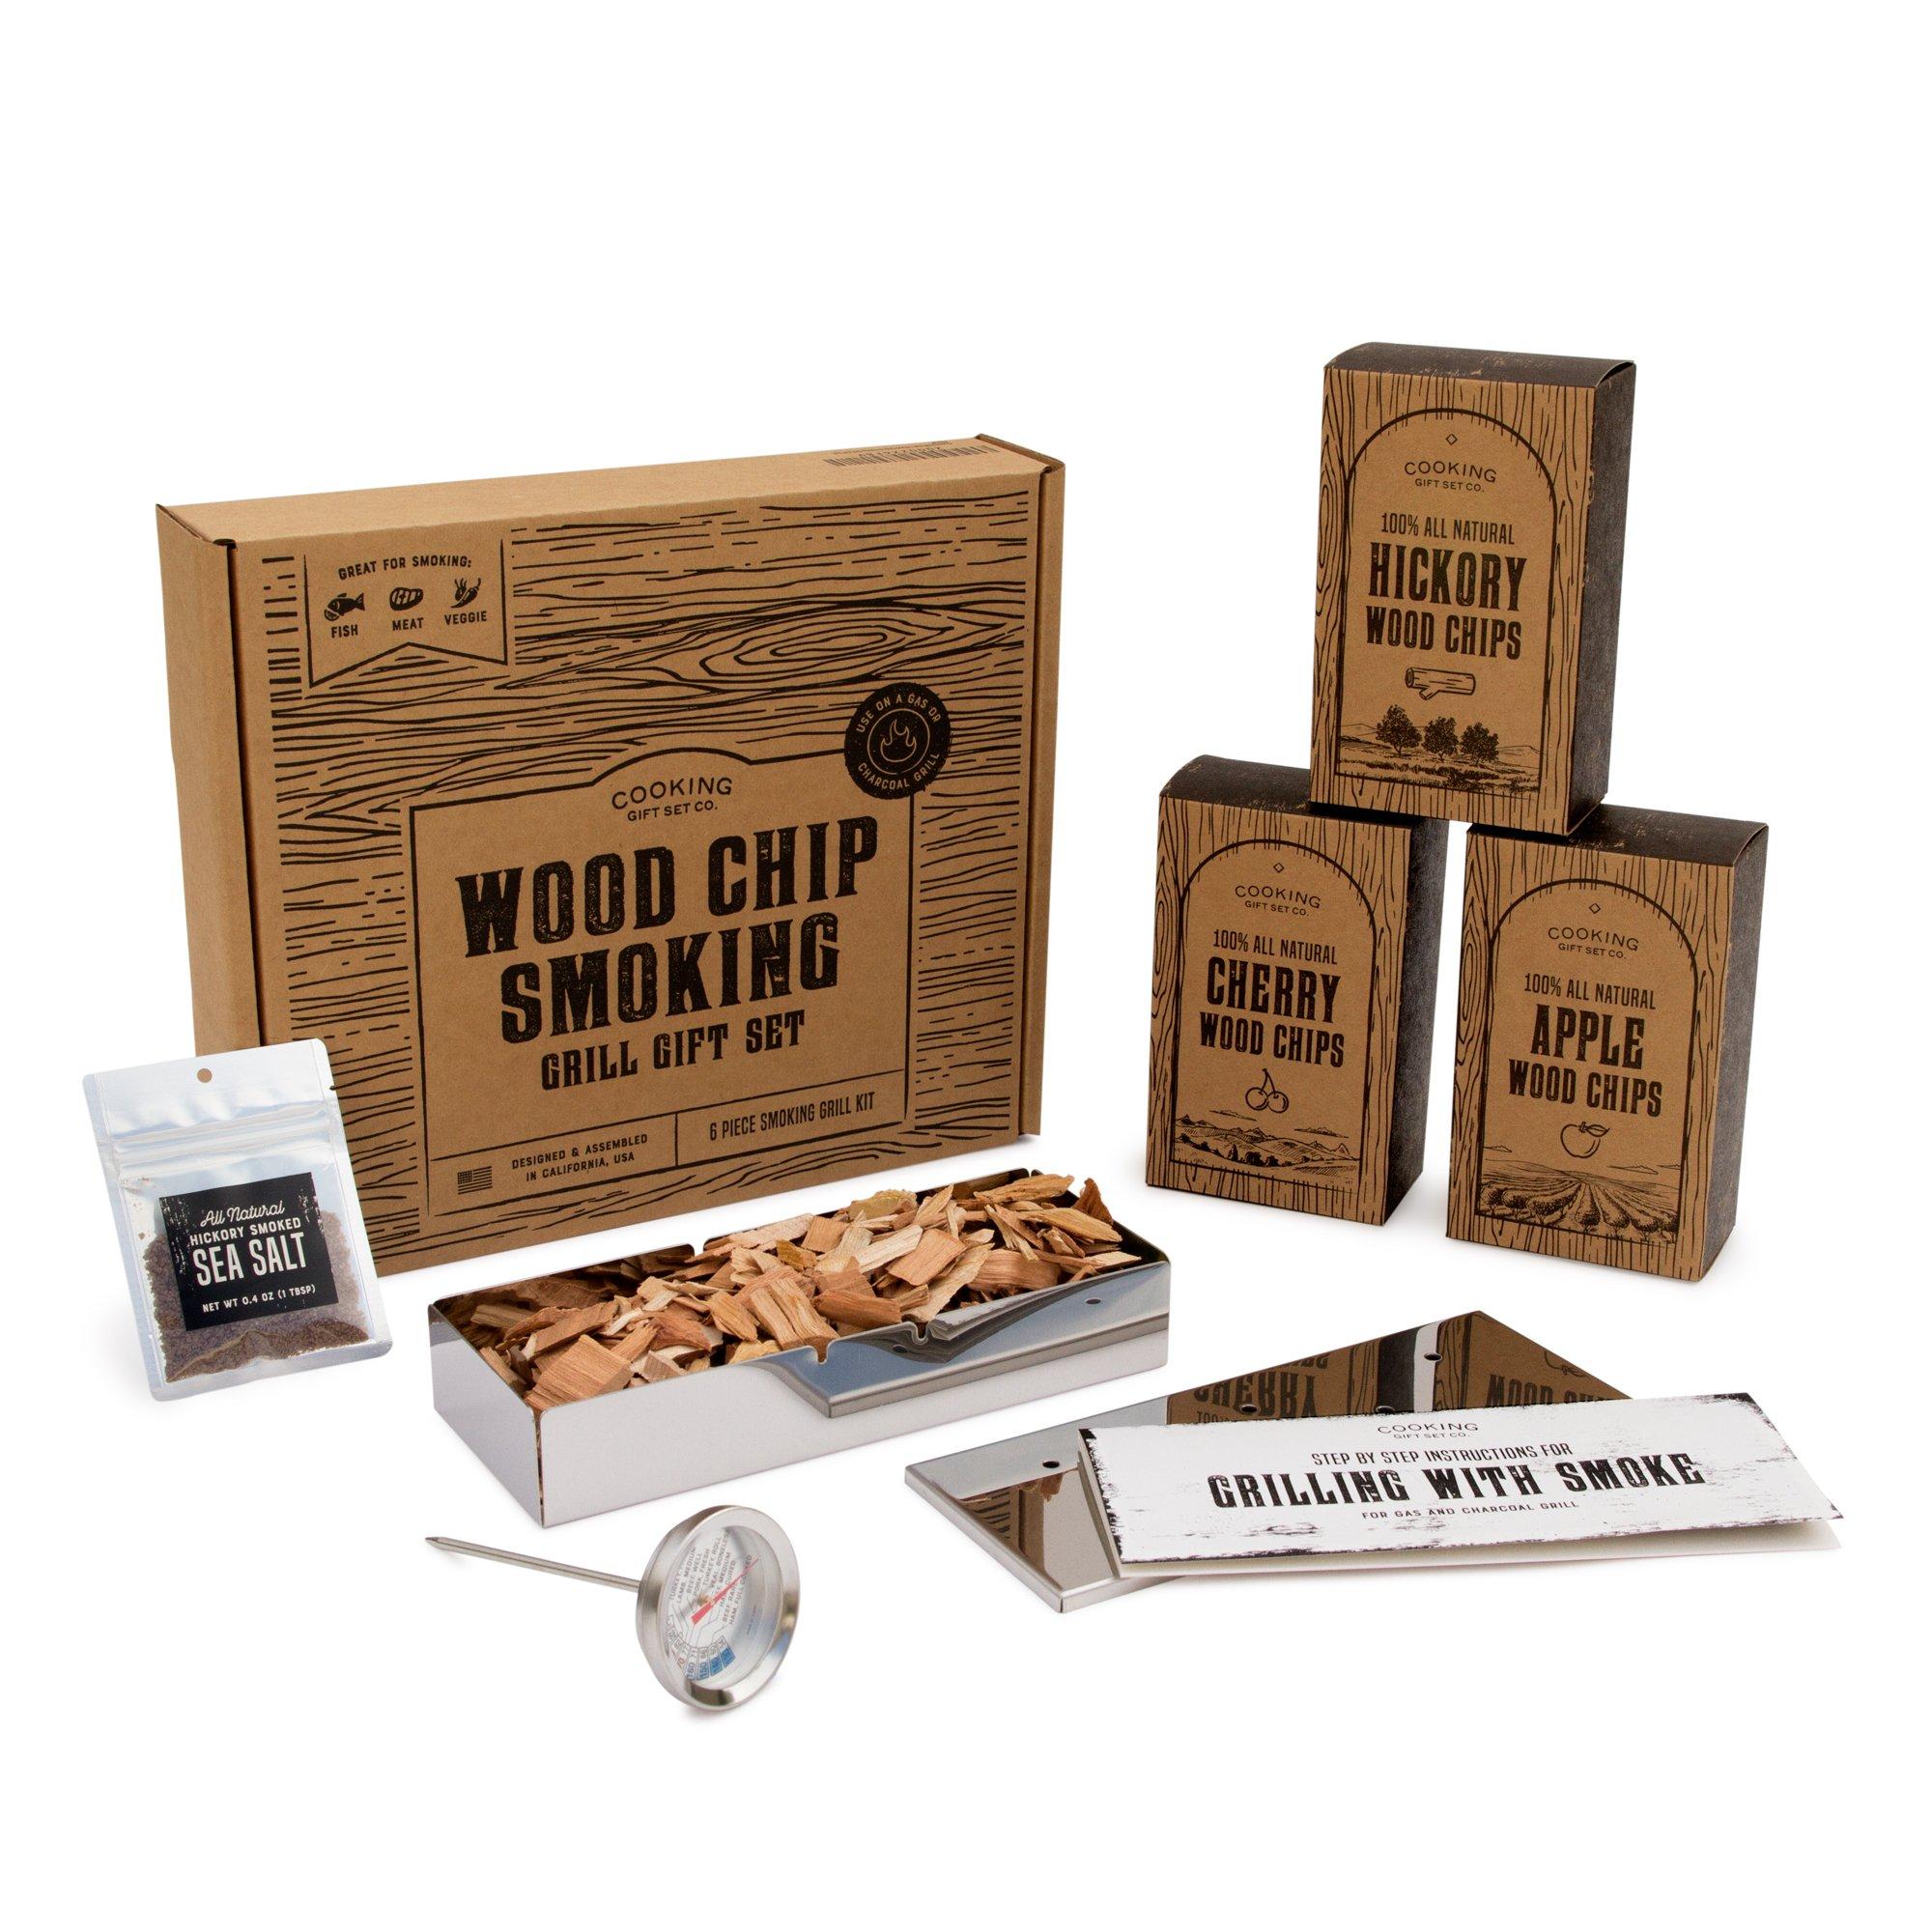 Cooking Gift Set | Wood Chips for Smoking and Grilling Box Set (6 PC) | BBQ Accessories Perfect for Birthday Gifts for Men, Anniversary, Housewarming Gifts by Cooking Gift Set